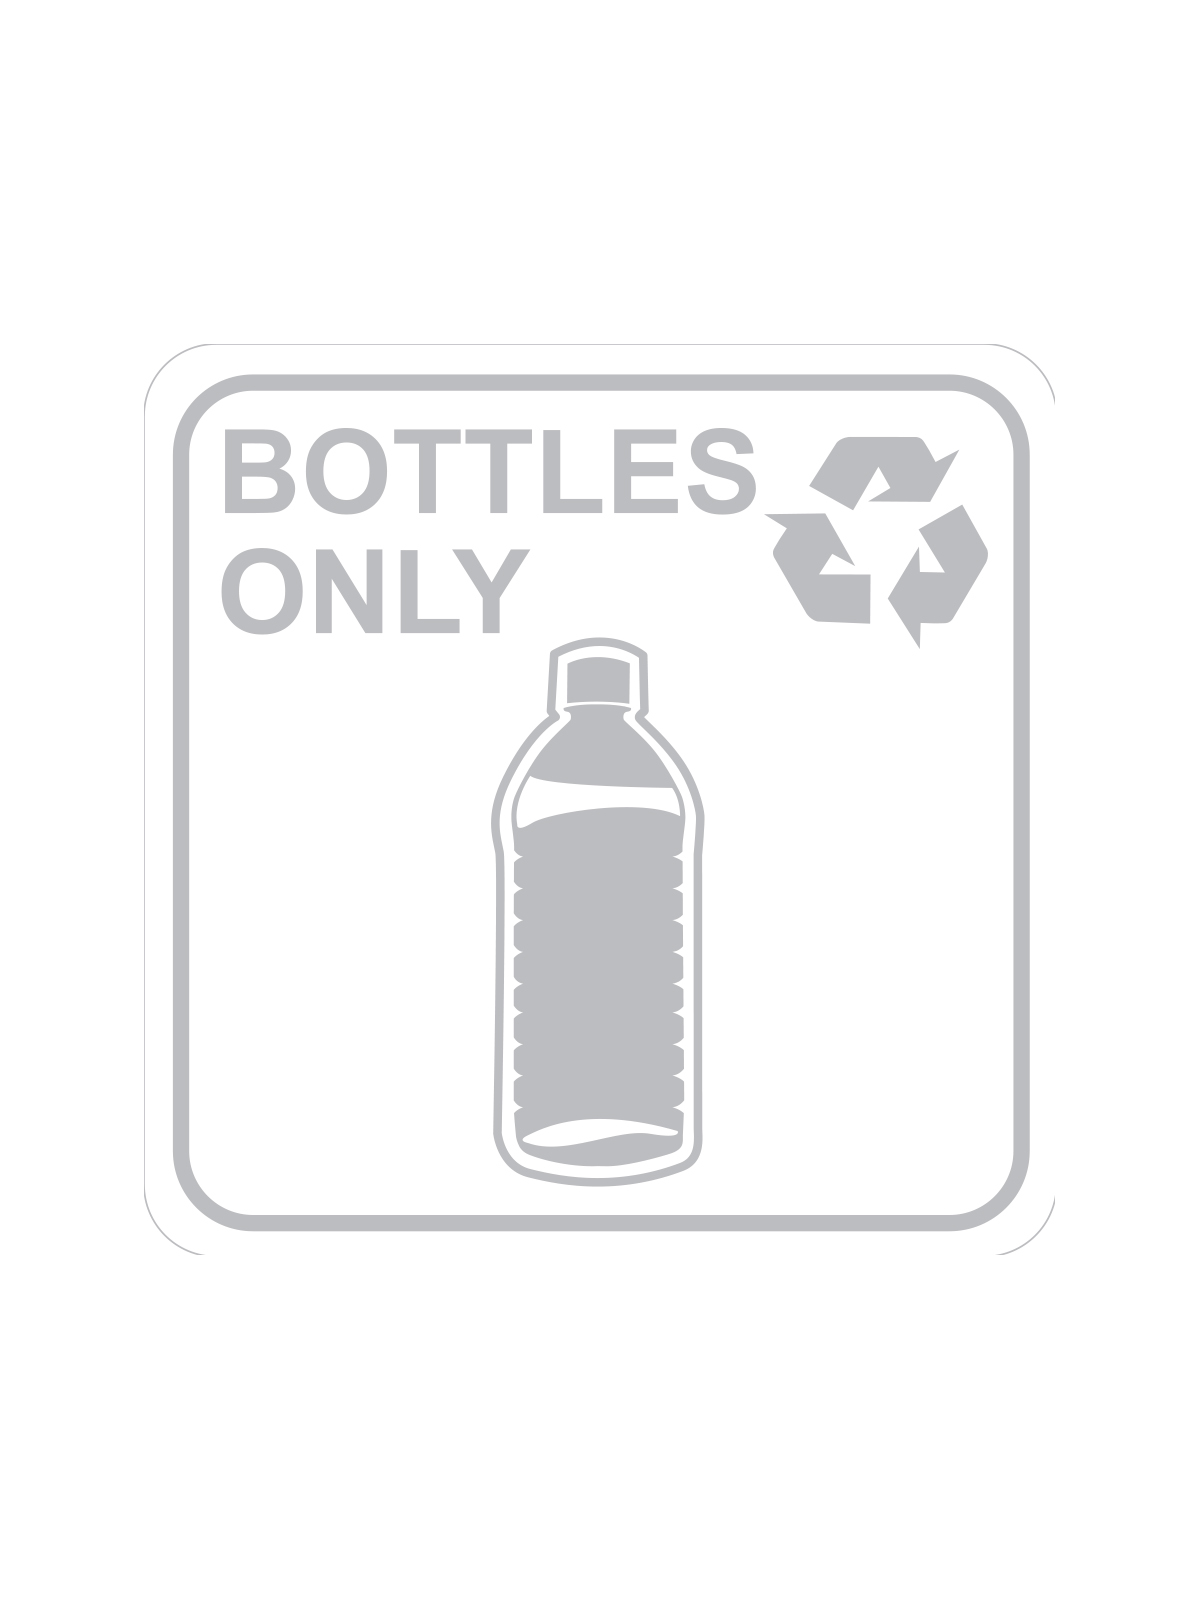 SQUARE LABEL BOTTLES ONLY